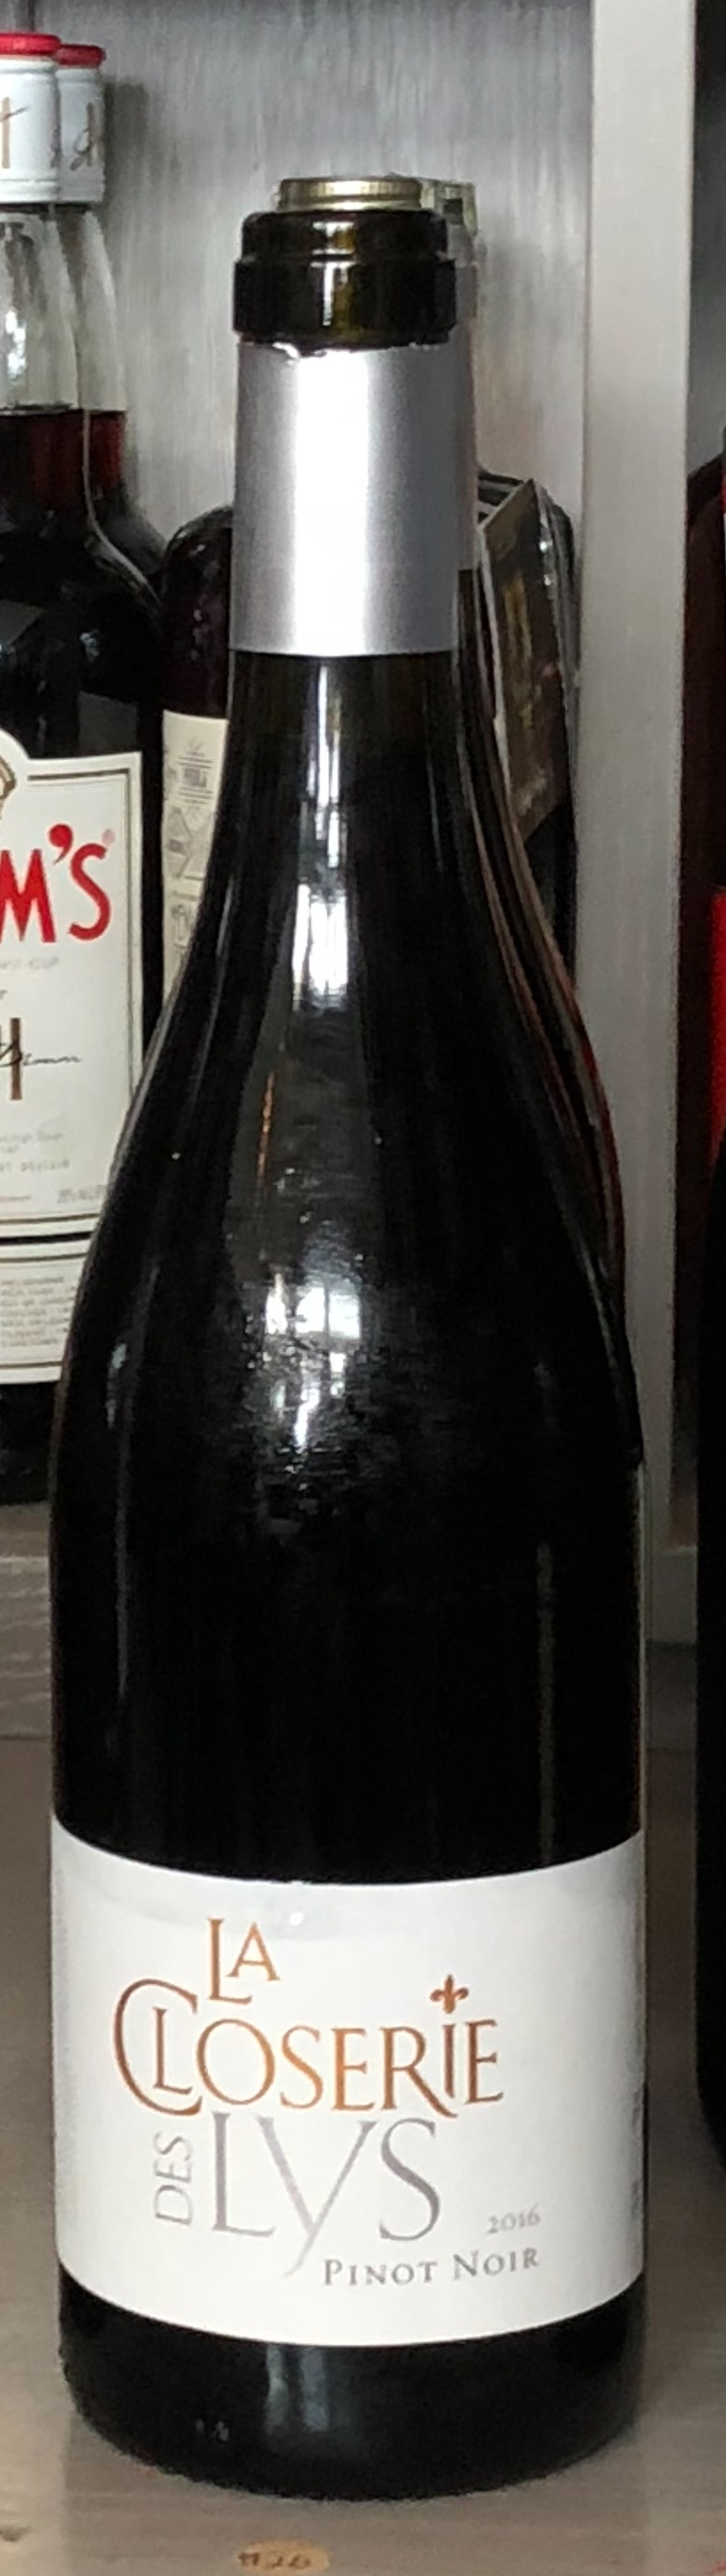 La Closerie des Lys Pinot Noir - This fruity, medium-bodied Pinot Noir with a nose of black cherry and spice comes from the Languedoc region of southern France. It is best served slightly chilled and we think it would make a great base for a summer sangria. $20